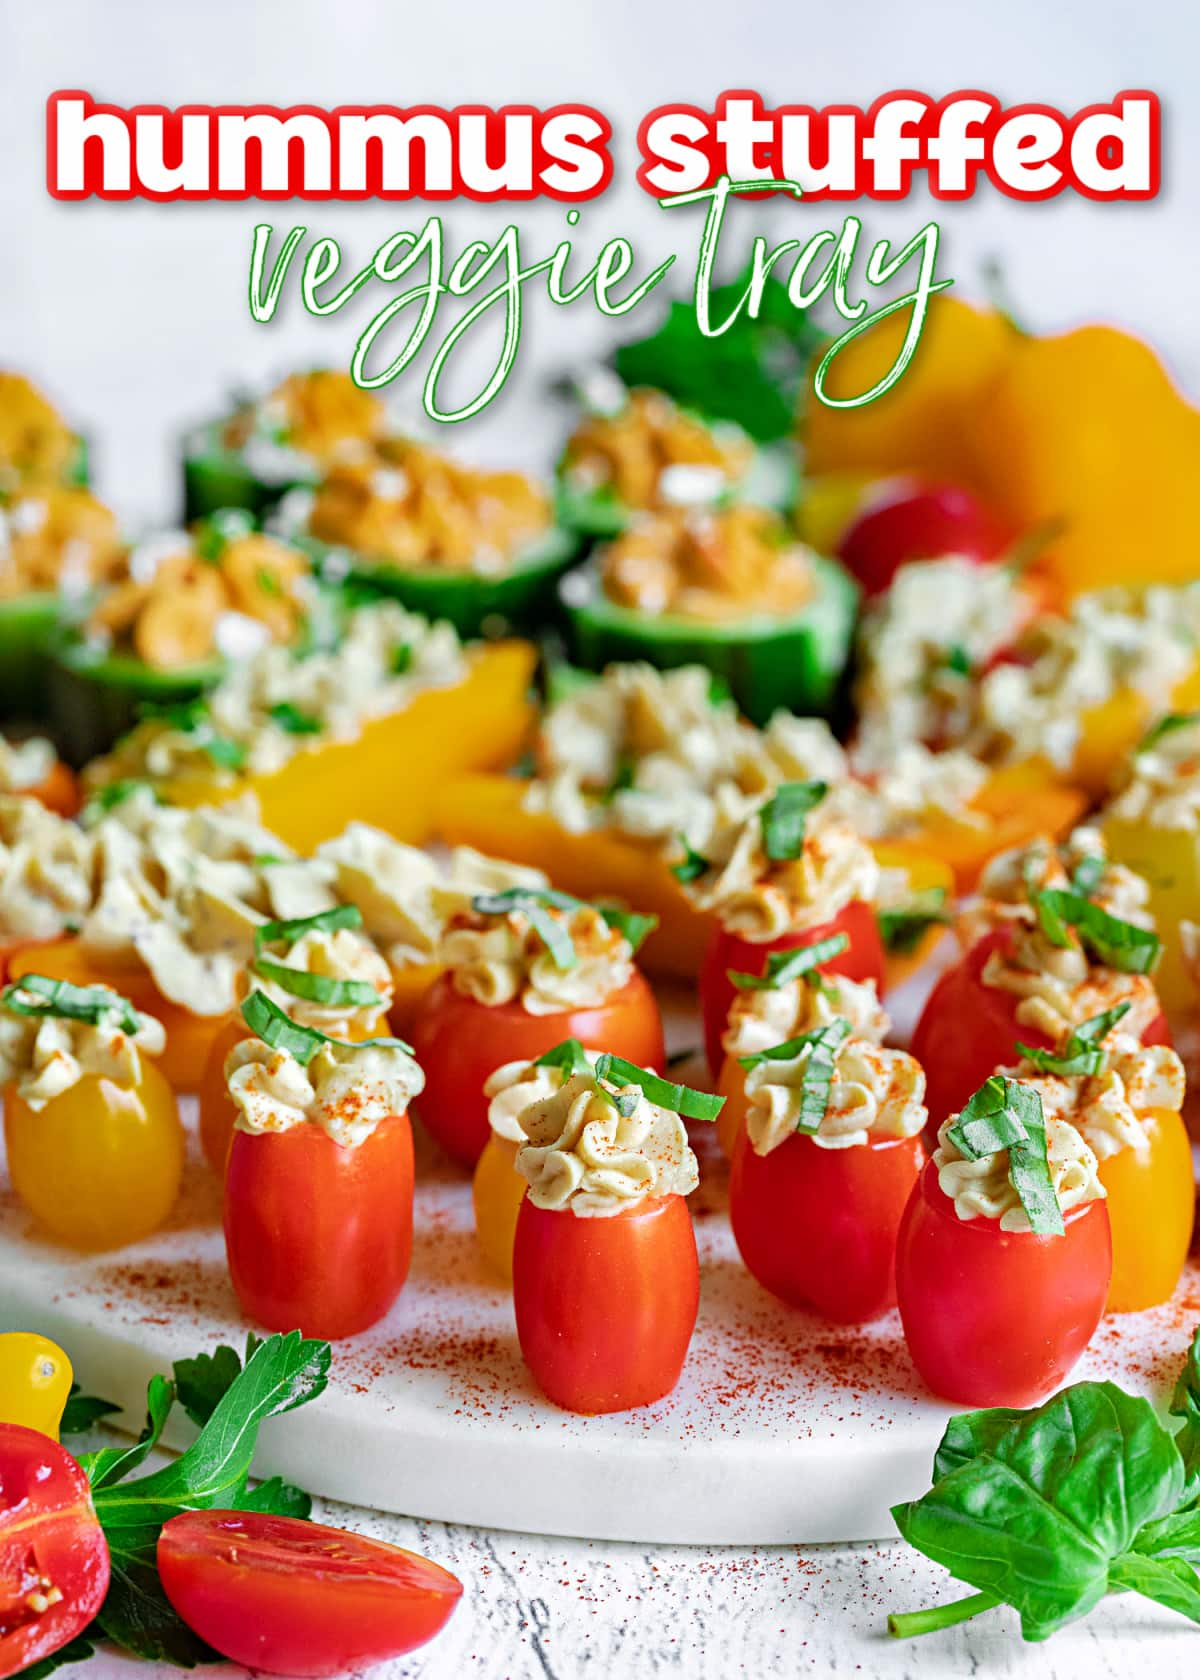 hummus stuffed veggies on white marble tray topped with herbs and title overlay at top